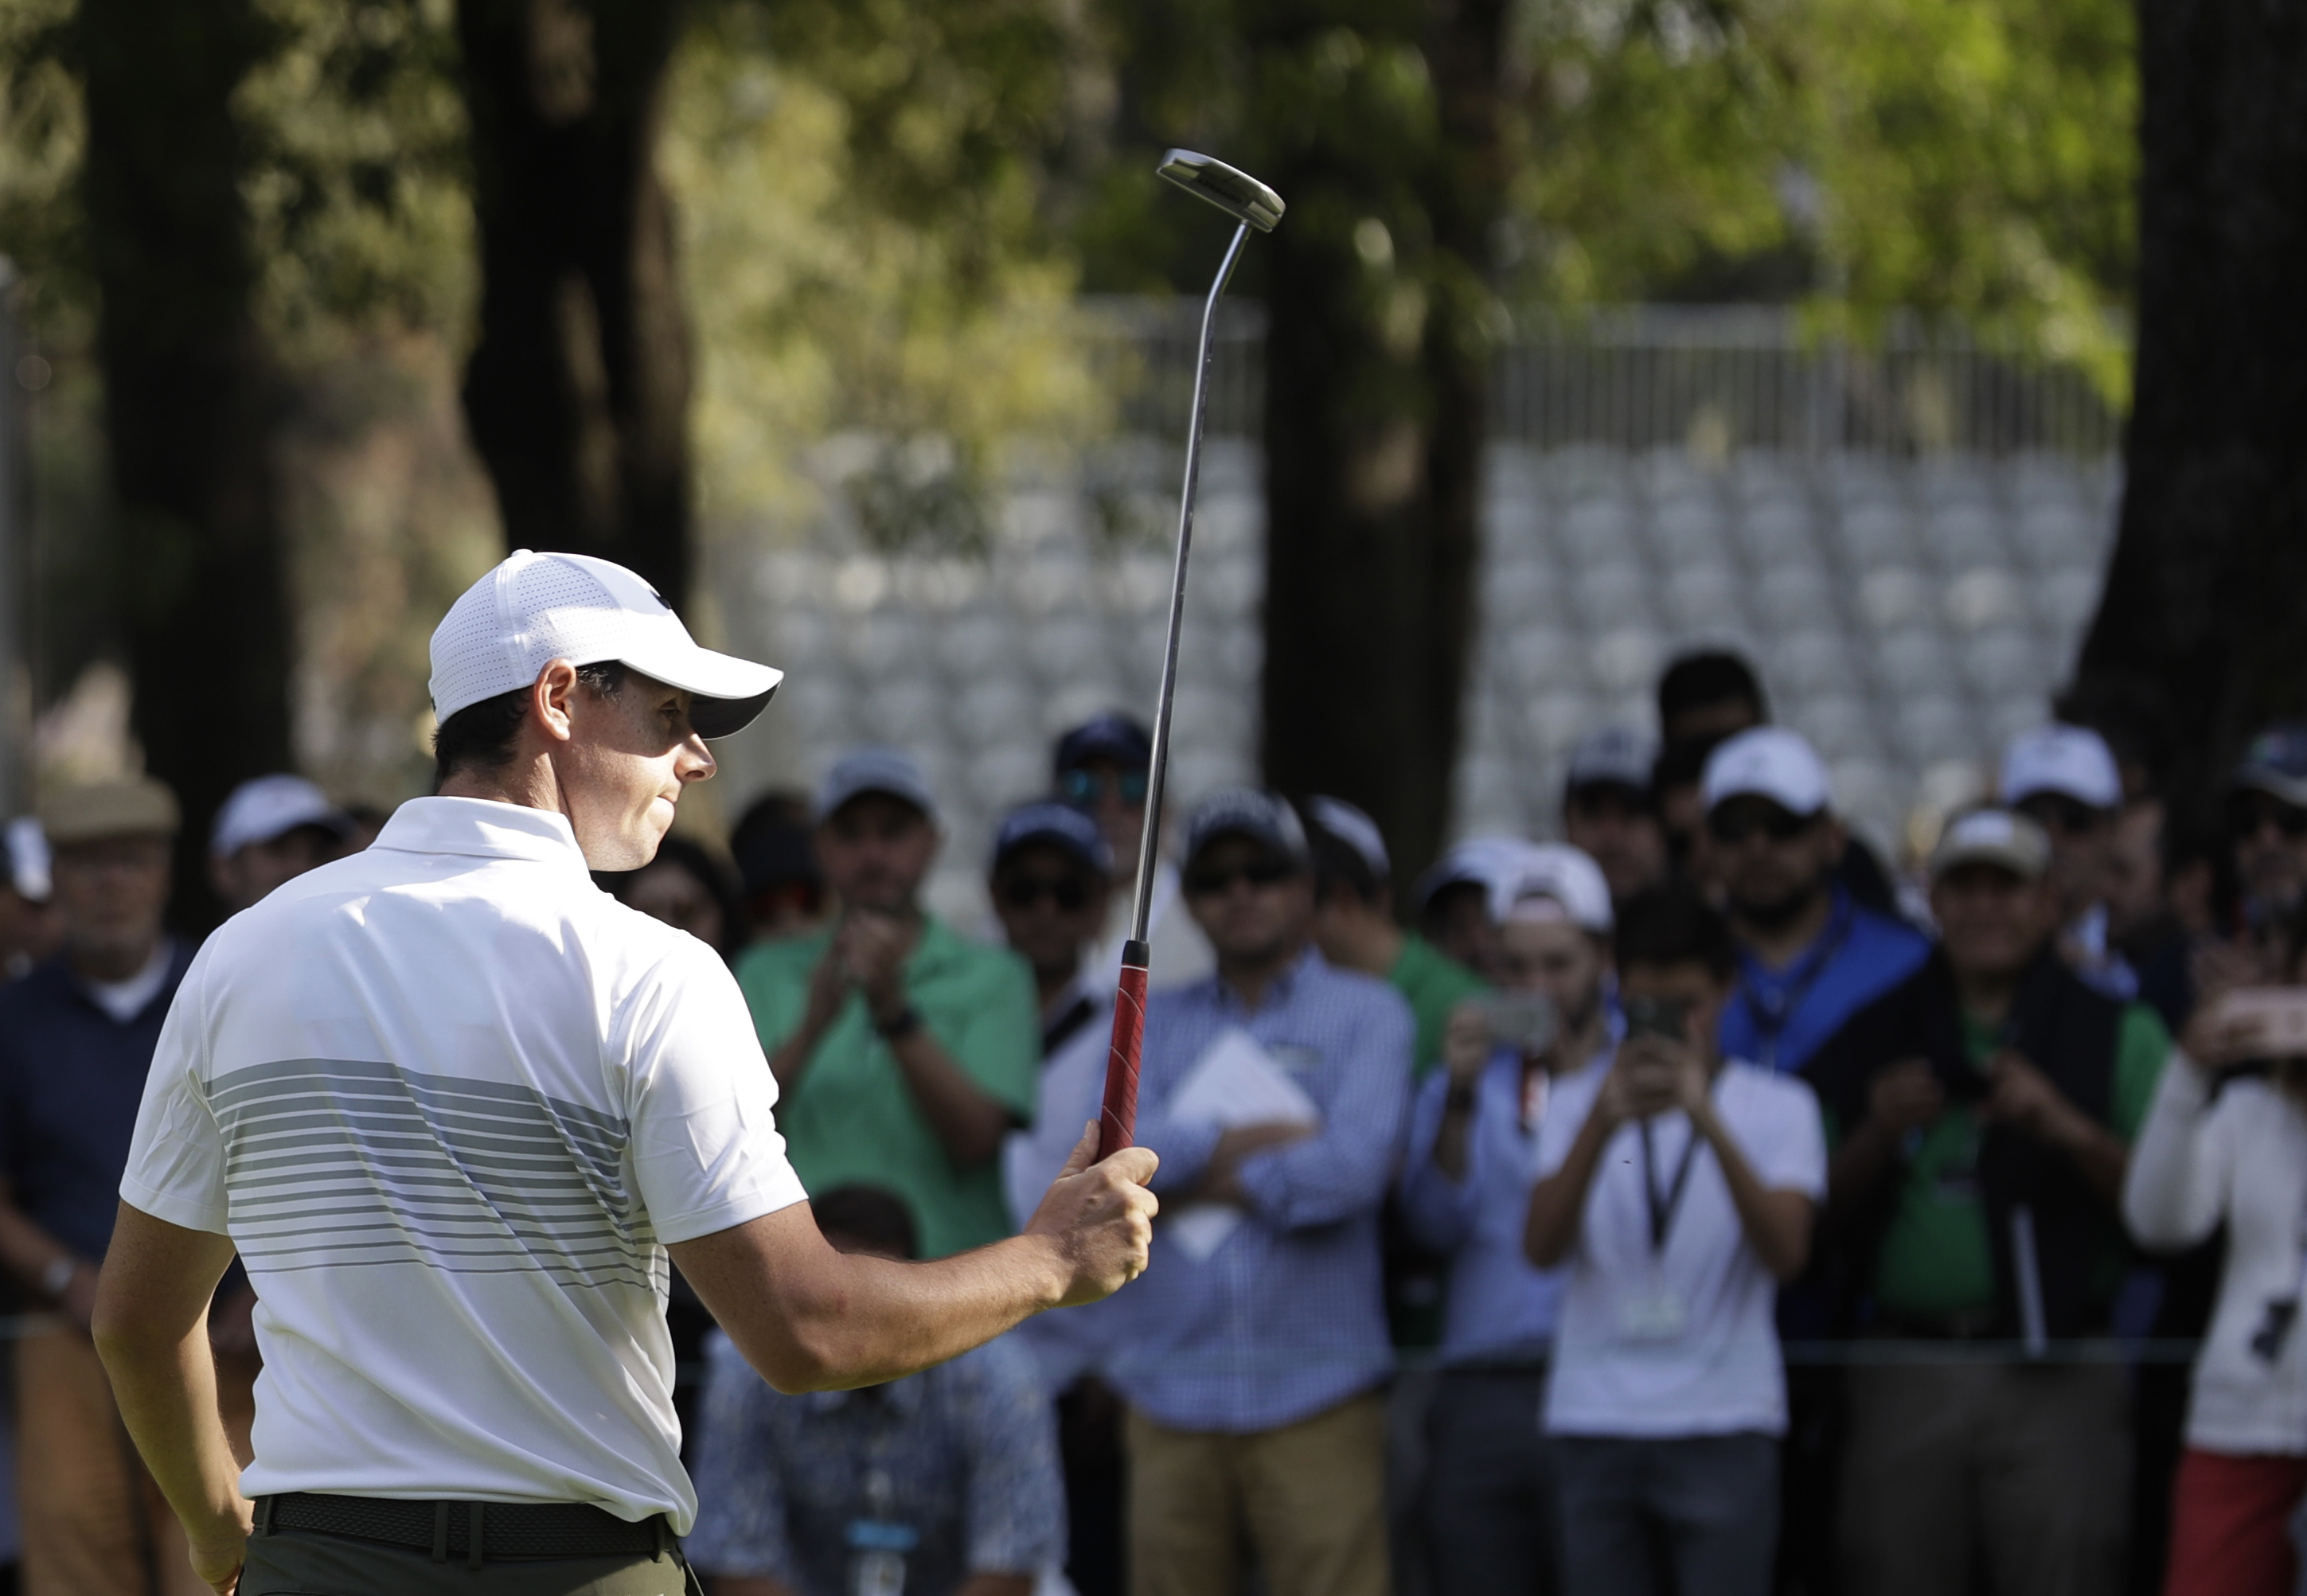 Rory McIlroy of Northern Ireland gestures to fans with his club as he leaves the 9th hole after finishing round one of the Mexico Championship at Chapultepec Golf Club in Mexico City, Thursday, March 2, 2017. All but one of the world's top 50 golfers are